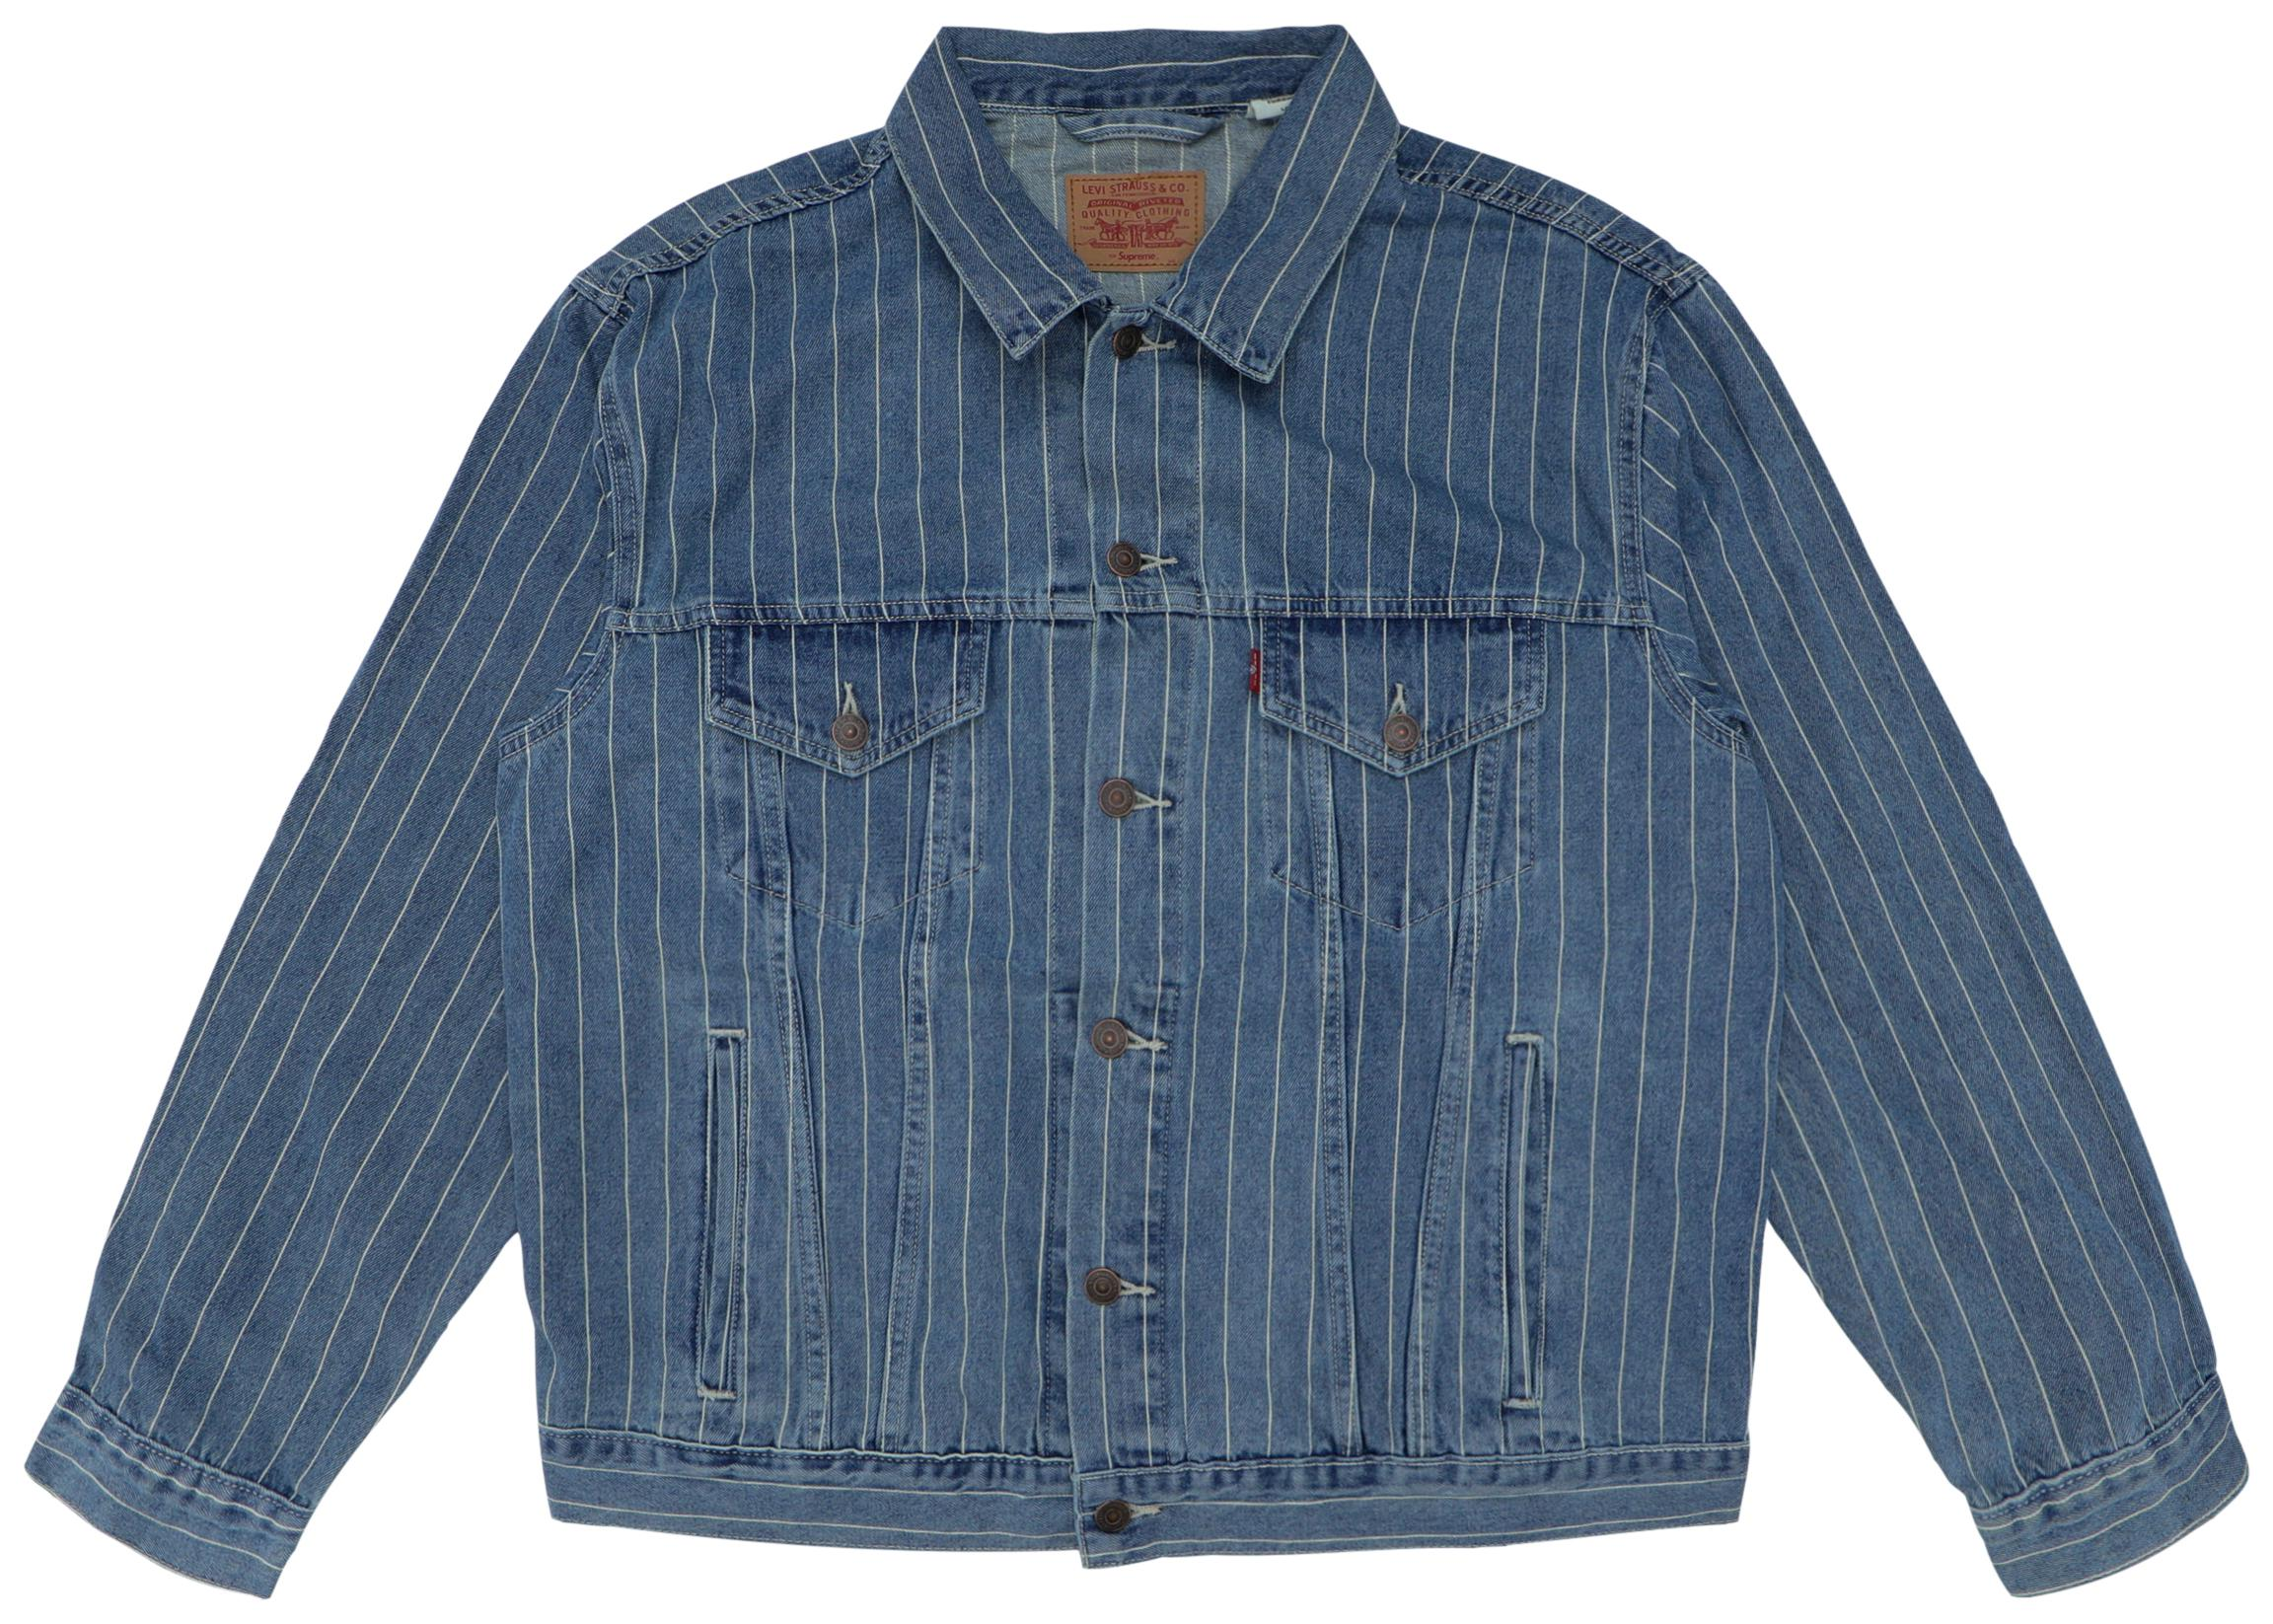 eef6dd8b Lyst - Supreme Levi's Pinstripe Trucker Jacket (with Pin) Blue ...